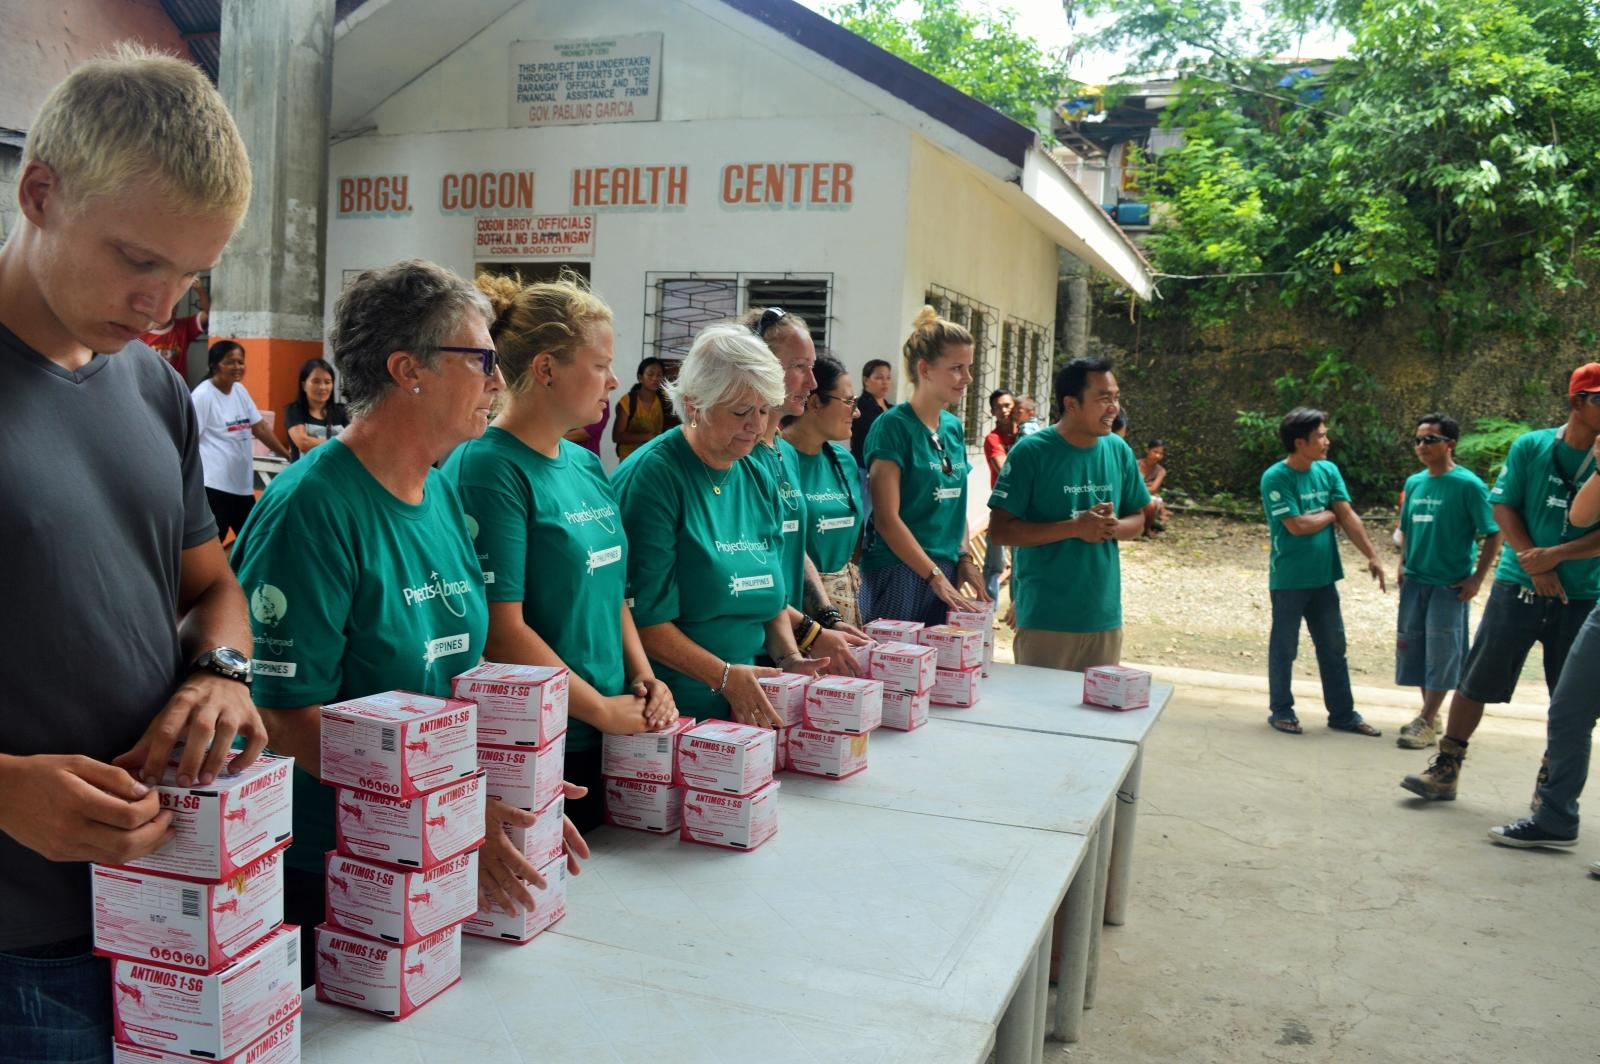 A group of volunteers providing free healthcare to a local community in The Philippines.